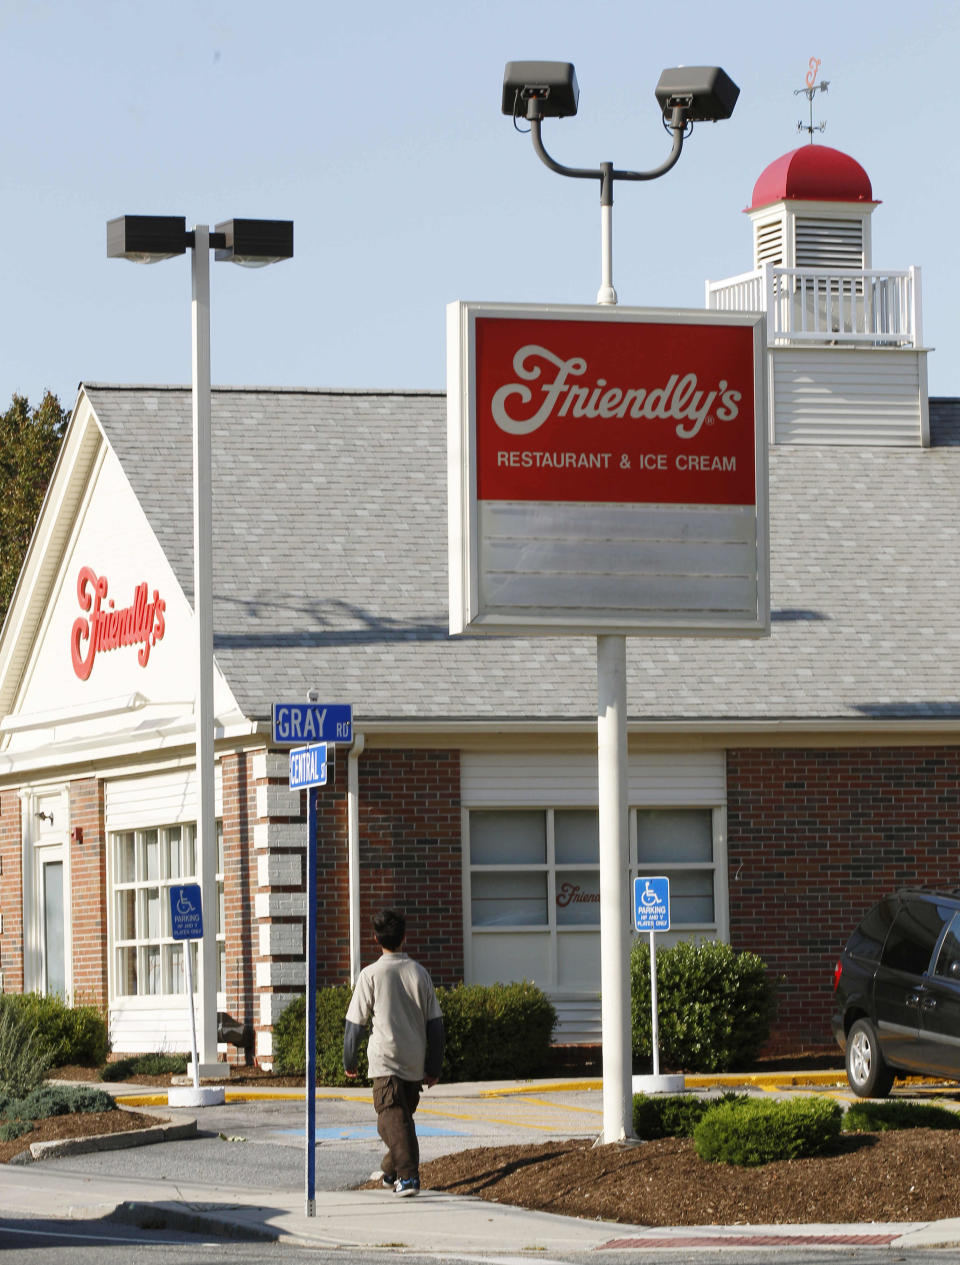 A boy walks past the Friendly's restaurant in Foxborough, Mass., Wednesday, Oct. 5, 2011.  The parent of the Massachusetts-based Friendly's restaurant chain filed for Chapter 11 bankruptcy  protection on Wednesday and said that it has already closed 63 of its stores. Each store employed about 20 people, so about 1,260 jobs were lost. (AP Photo/Charles Krupa)